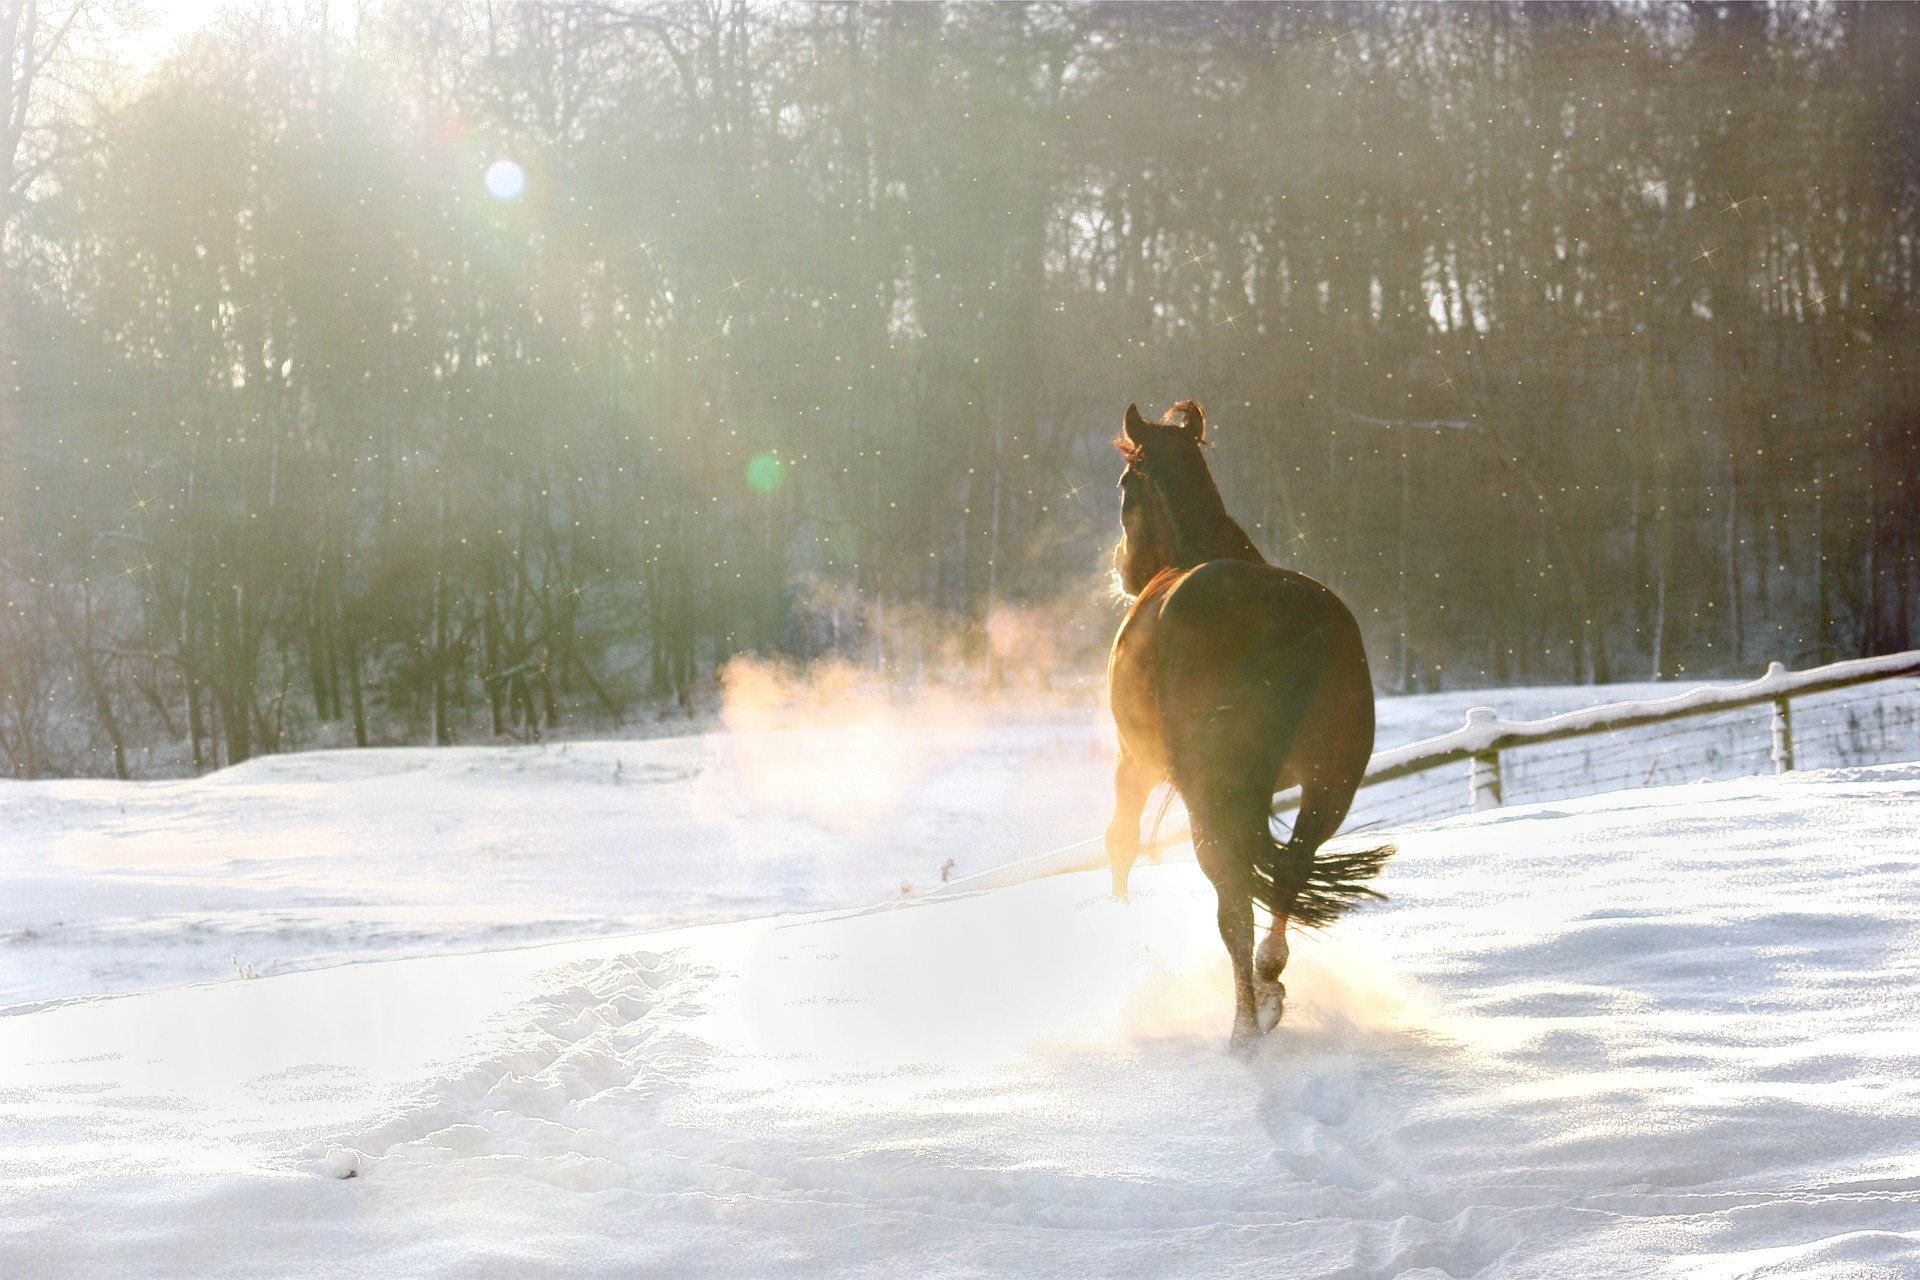 Winter. Come for the beauty, stay for the... no, don't stay. Take your horse and head south!